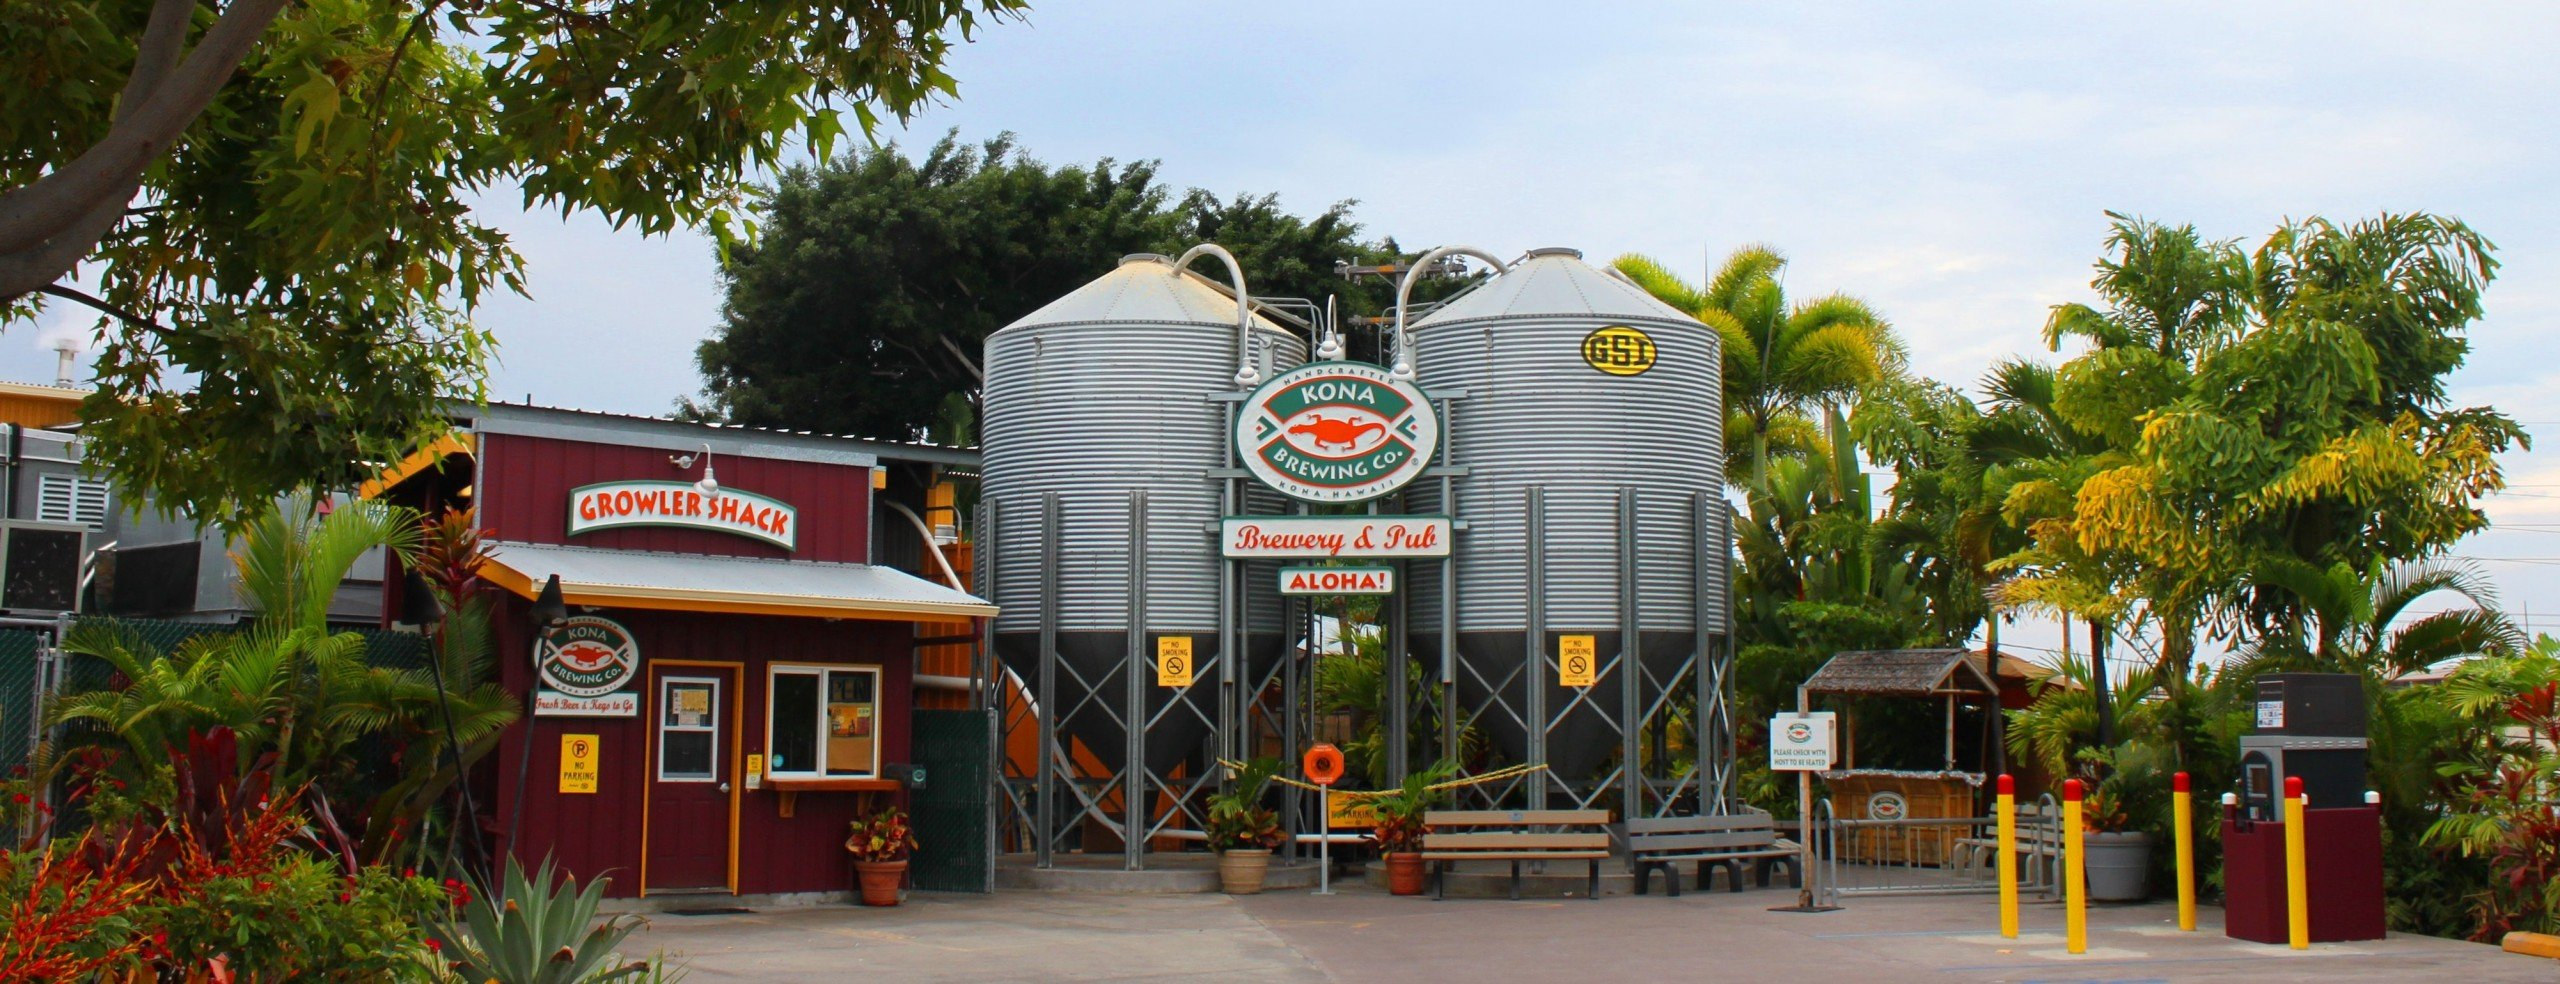 Kona Brewing Co. was founded in 1994. In 2012, it produced 220,000 barrels of beer and is sold in 40 states and nine countries. Photo: Courtesy Kona Brewing Co.